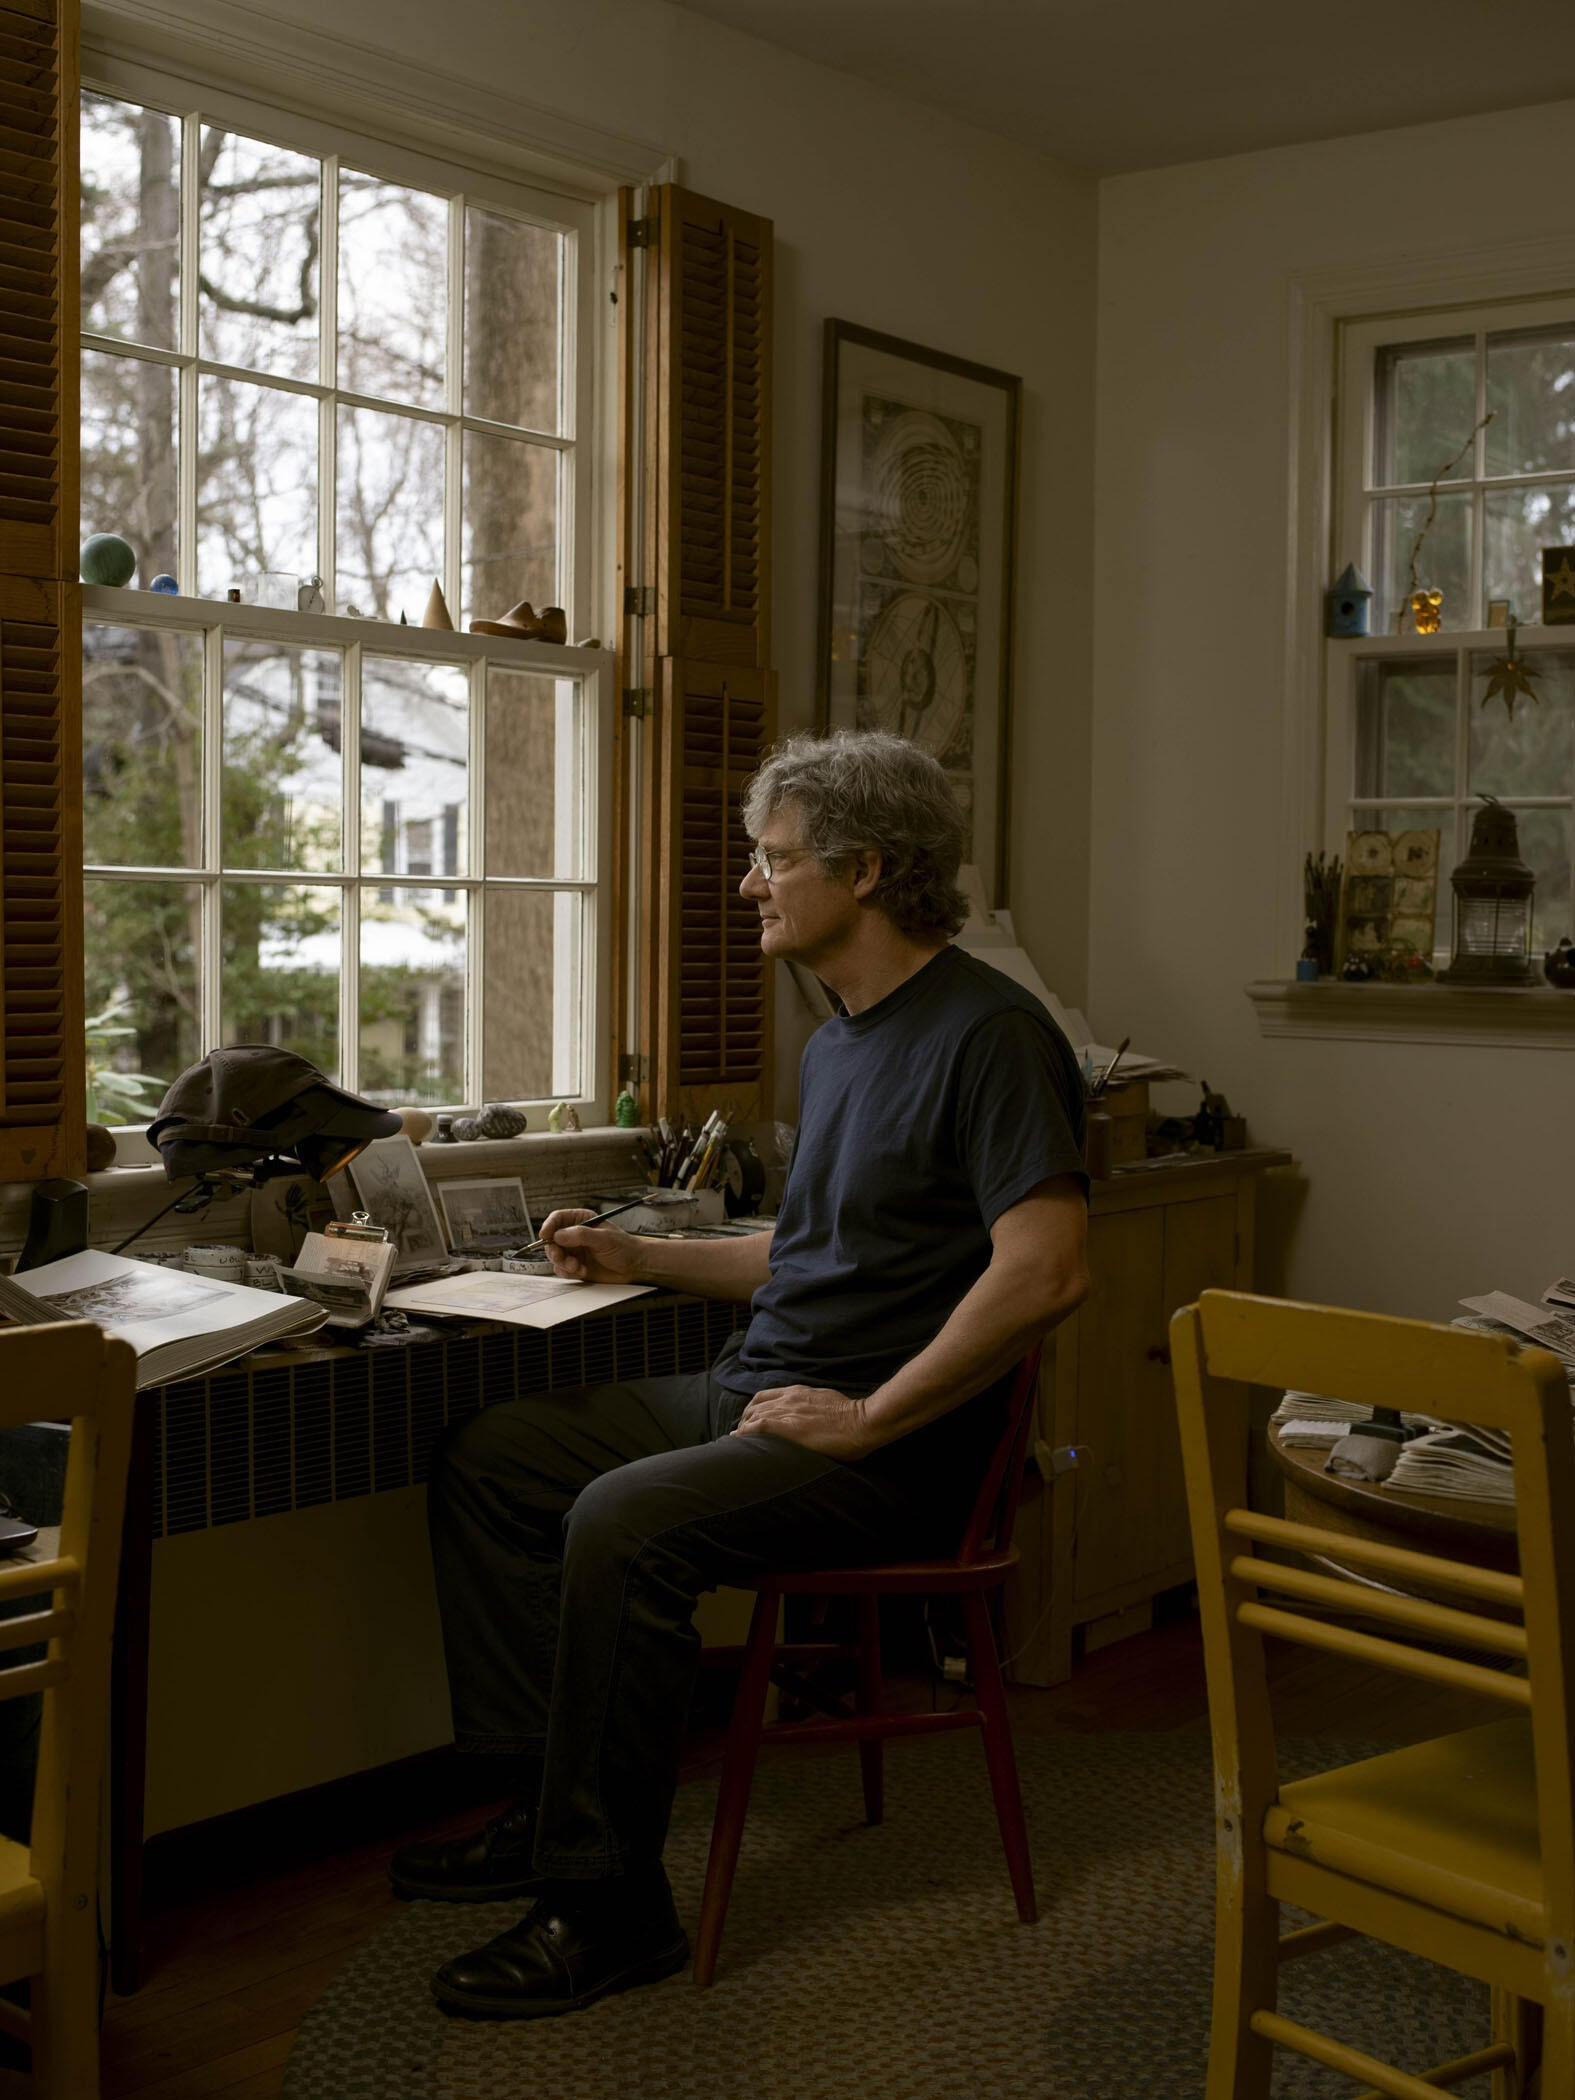 Photograph of the Artist Looking out of His Studio Window, 2020 image